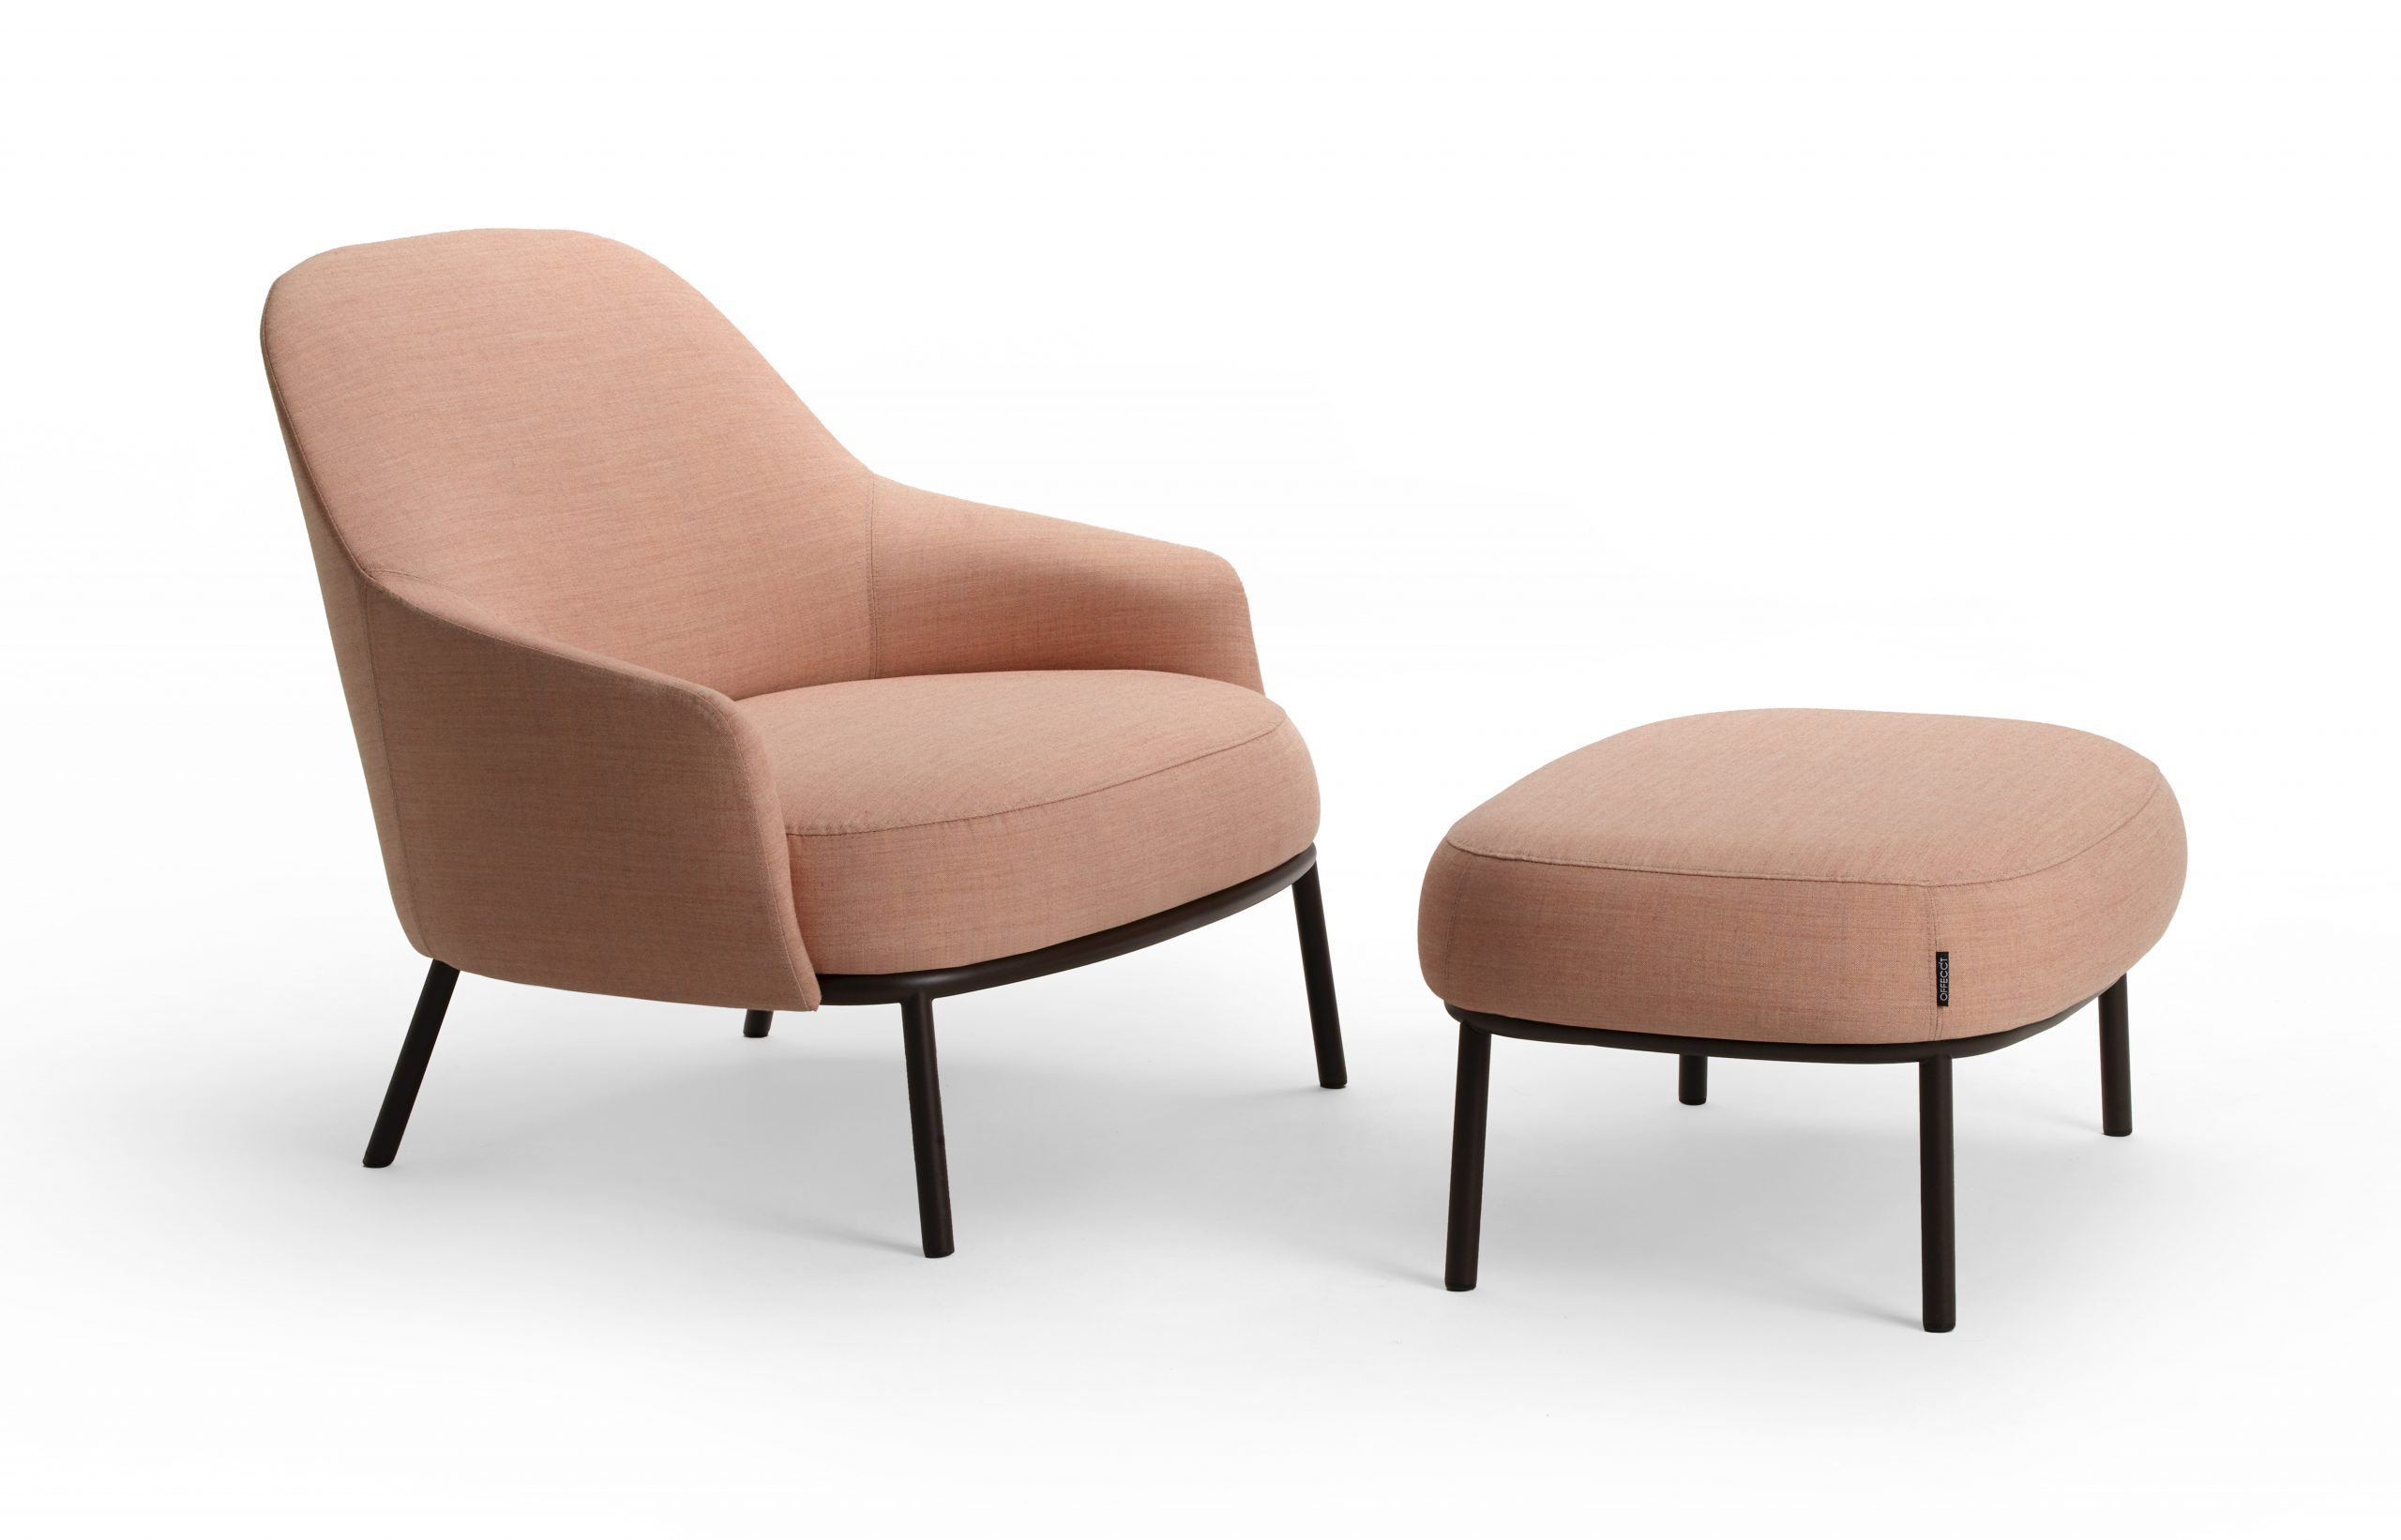 Shift easychair classic and ottoman by Debiasi Sandri for Offecct